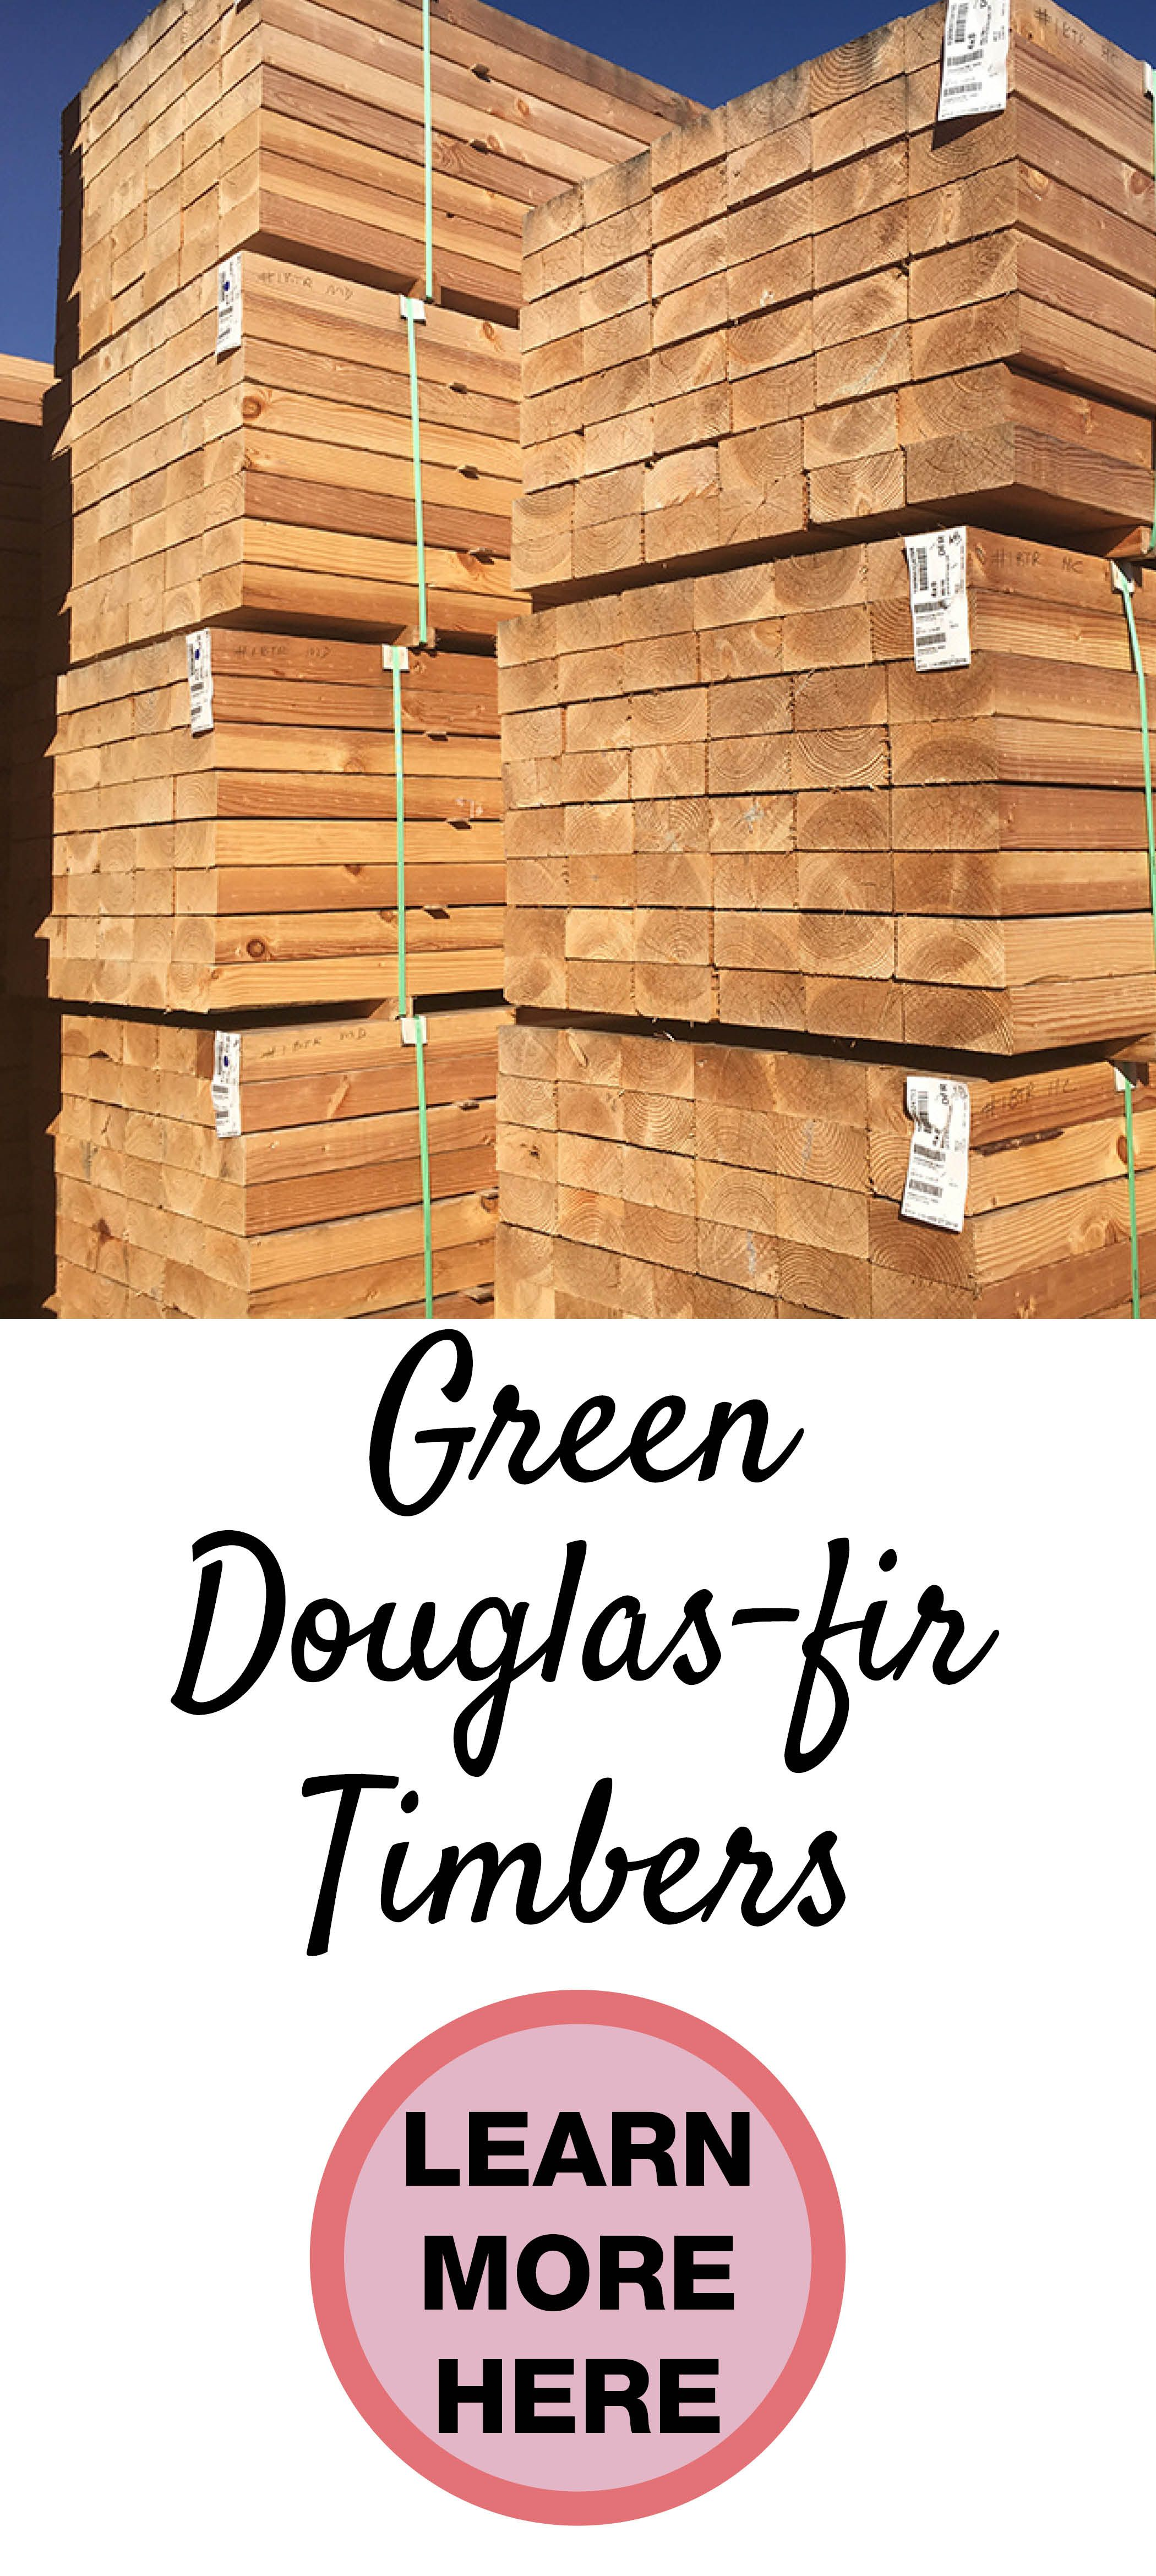 Fsc Certified Green Douglas Fir Timbers Are Available Rough And S4s Rough Green Timbers Are Available In 4 Inc Timber Frame Barn Timber Container House Plans